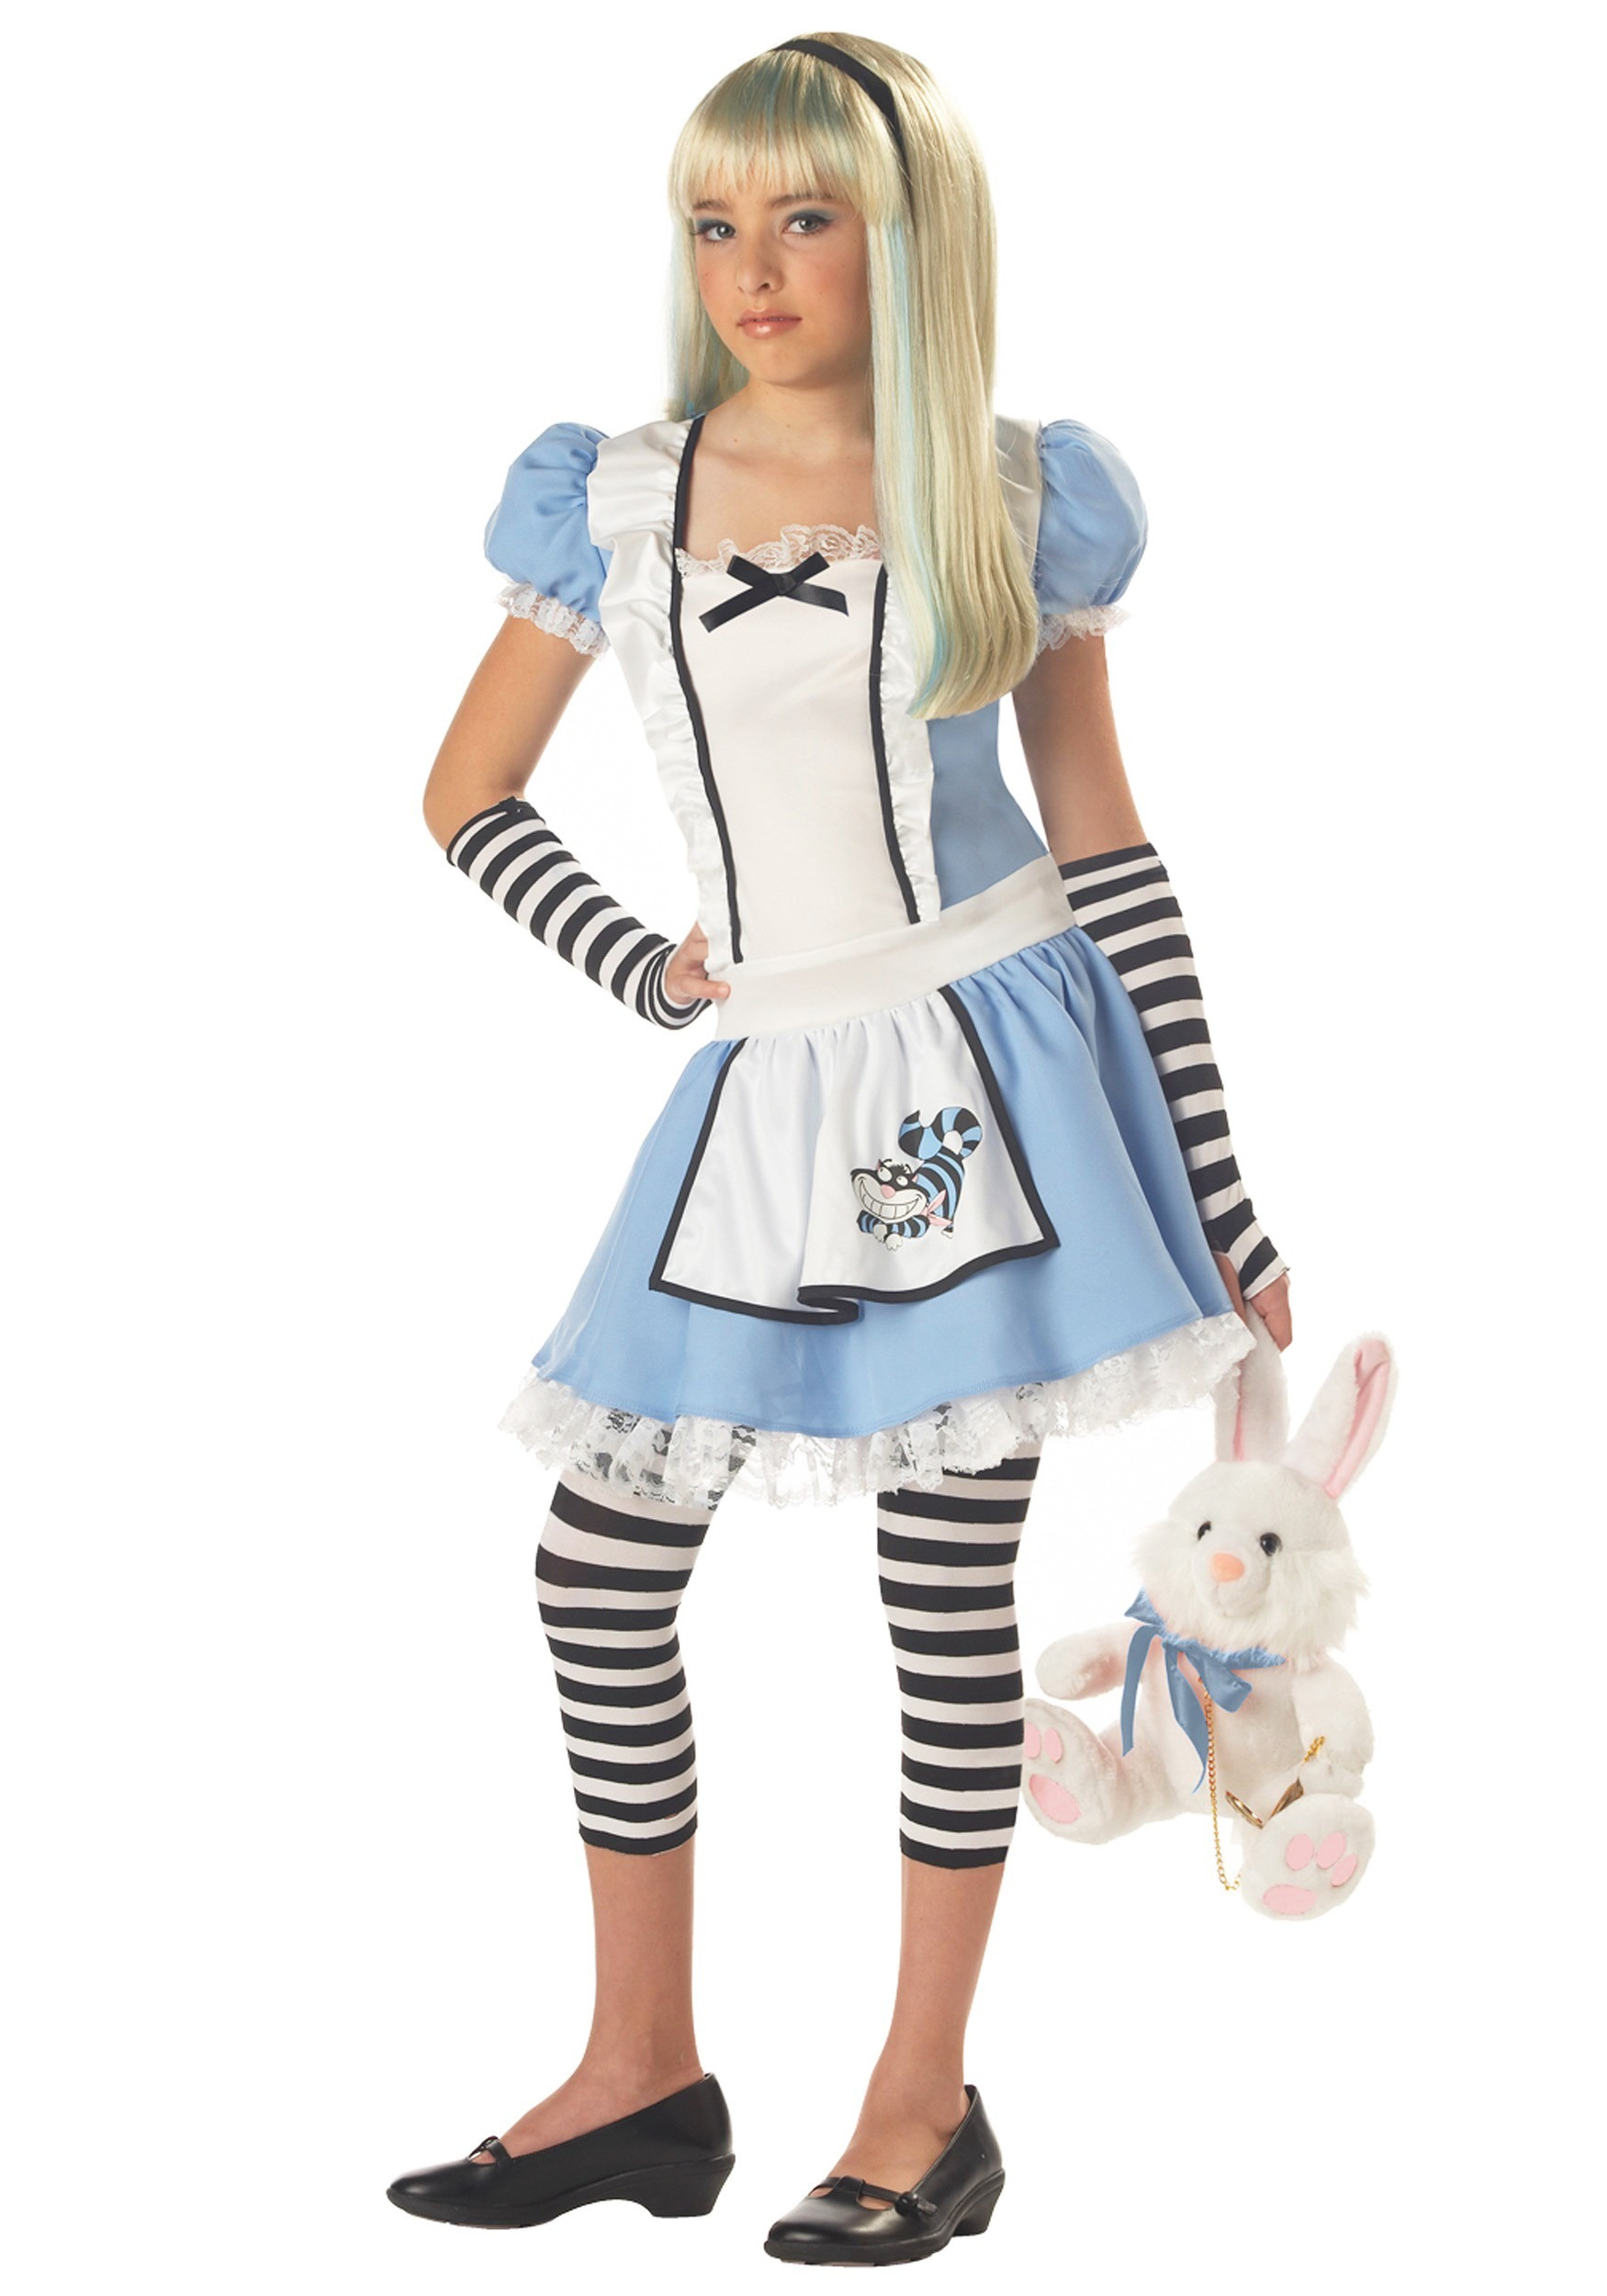 sc 1 st  Halloween Costumes : alice in wonderland girls costumes  - Germanpascual.Com